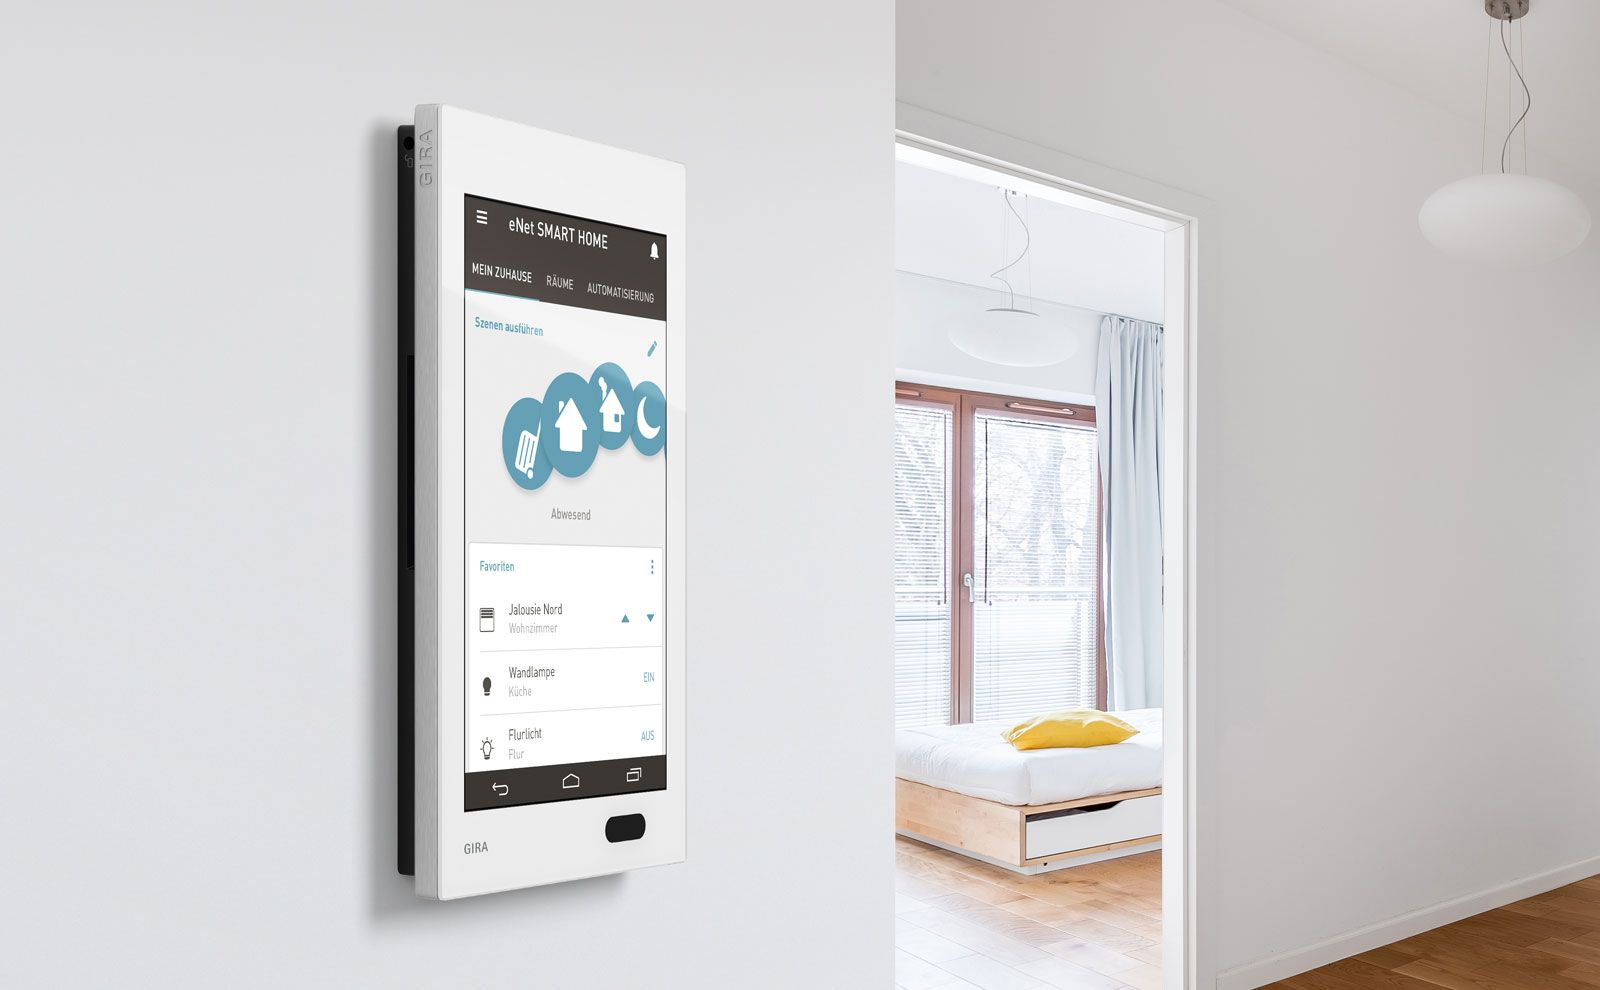 Gira eNet SMART HOME in Flur